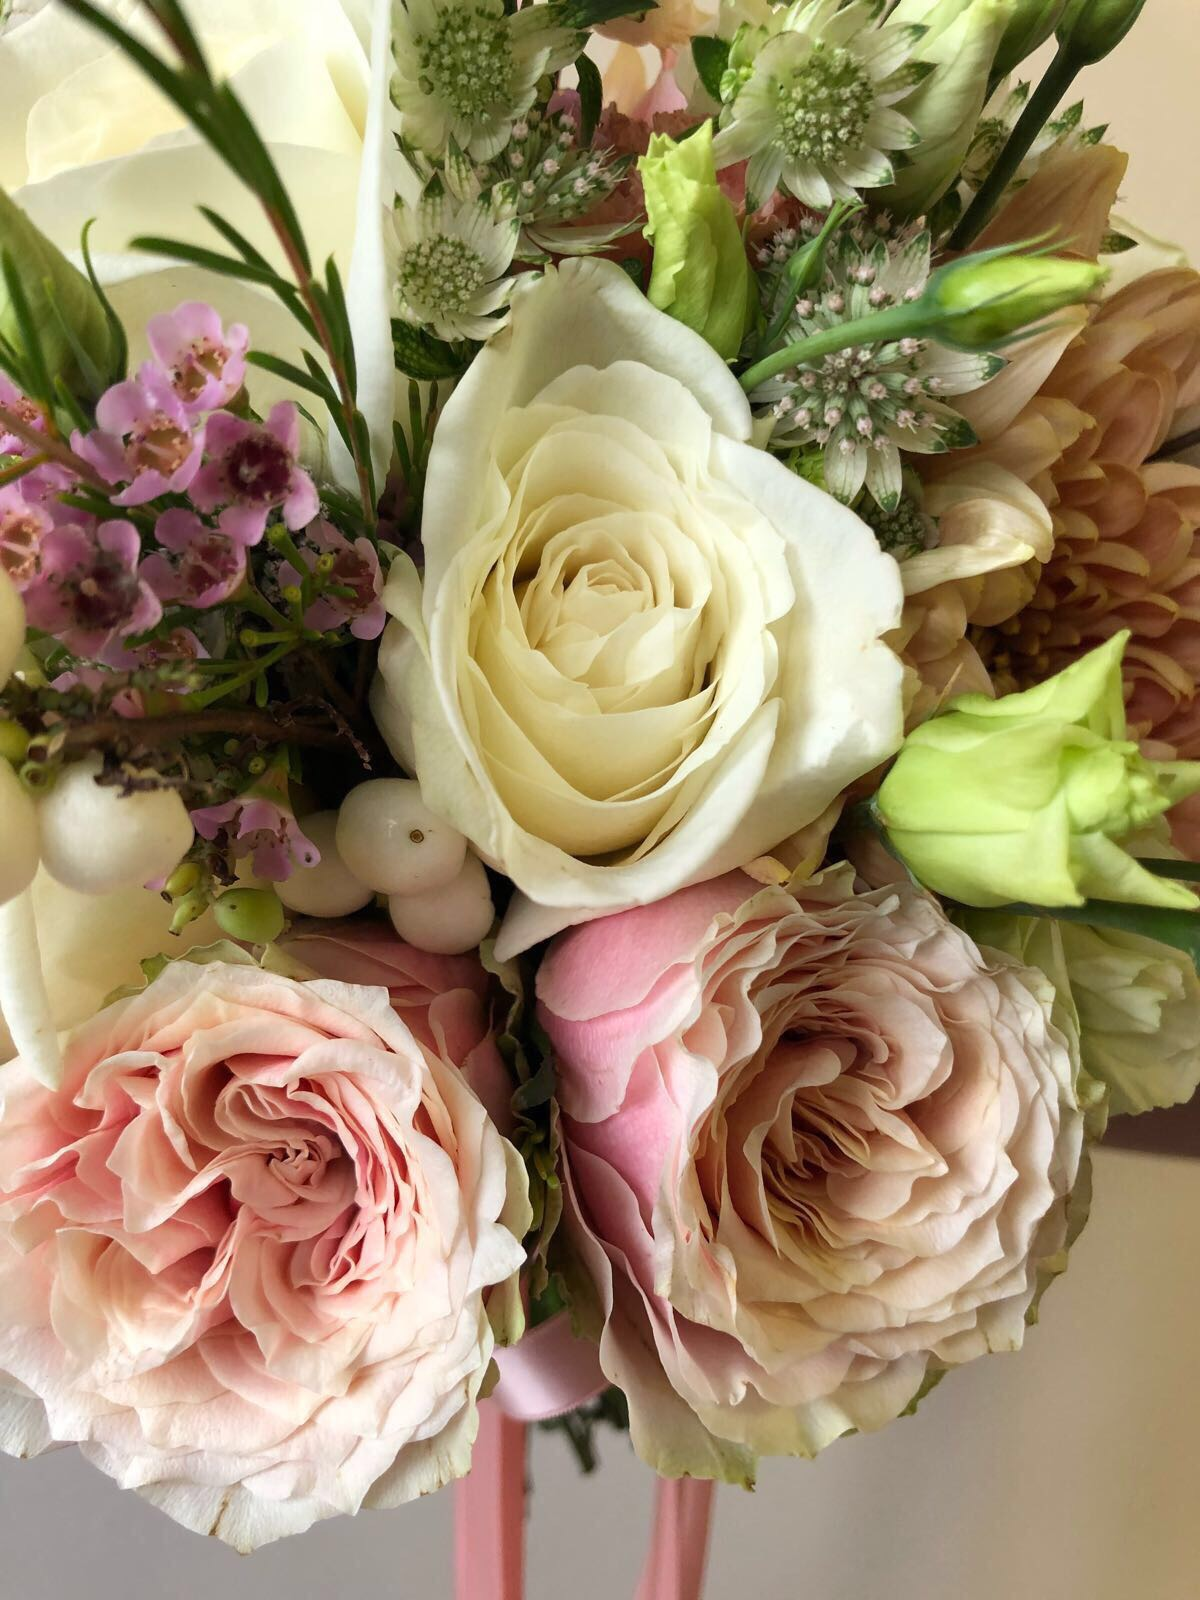 Helen Of Troy Antique pink roses, Astrantia, Snowberry's, Salmon pink Chrysanthemum